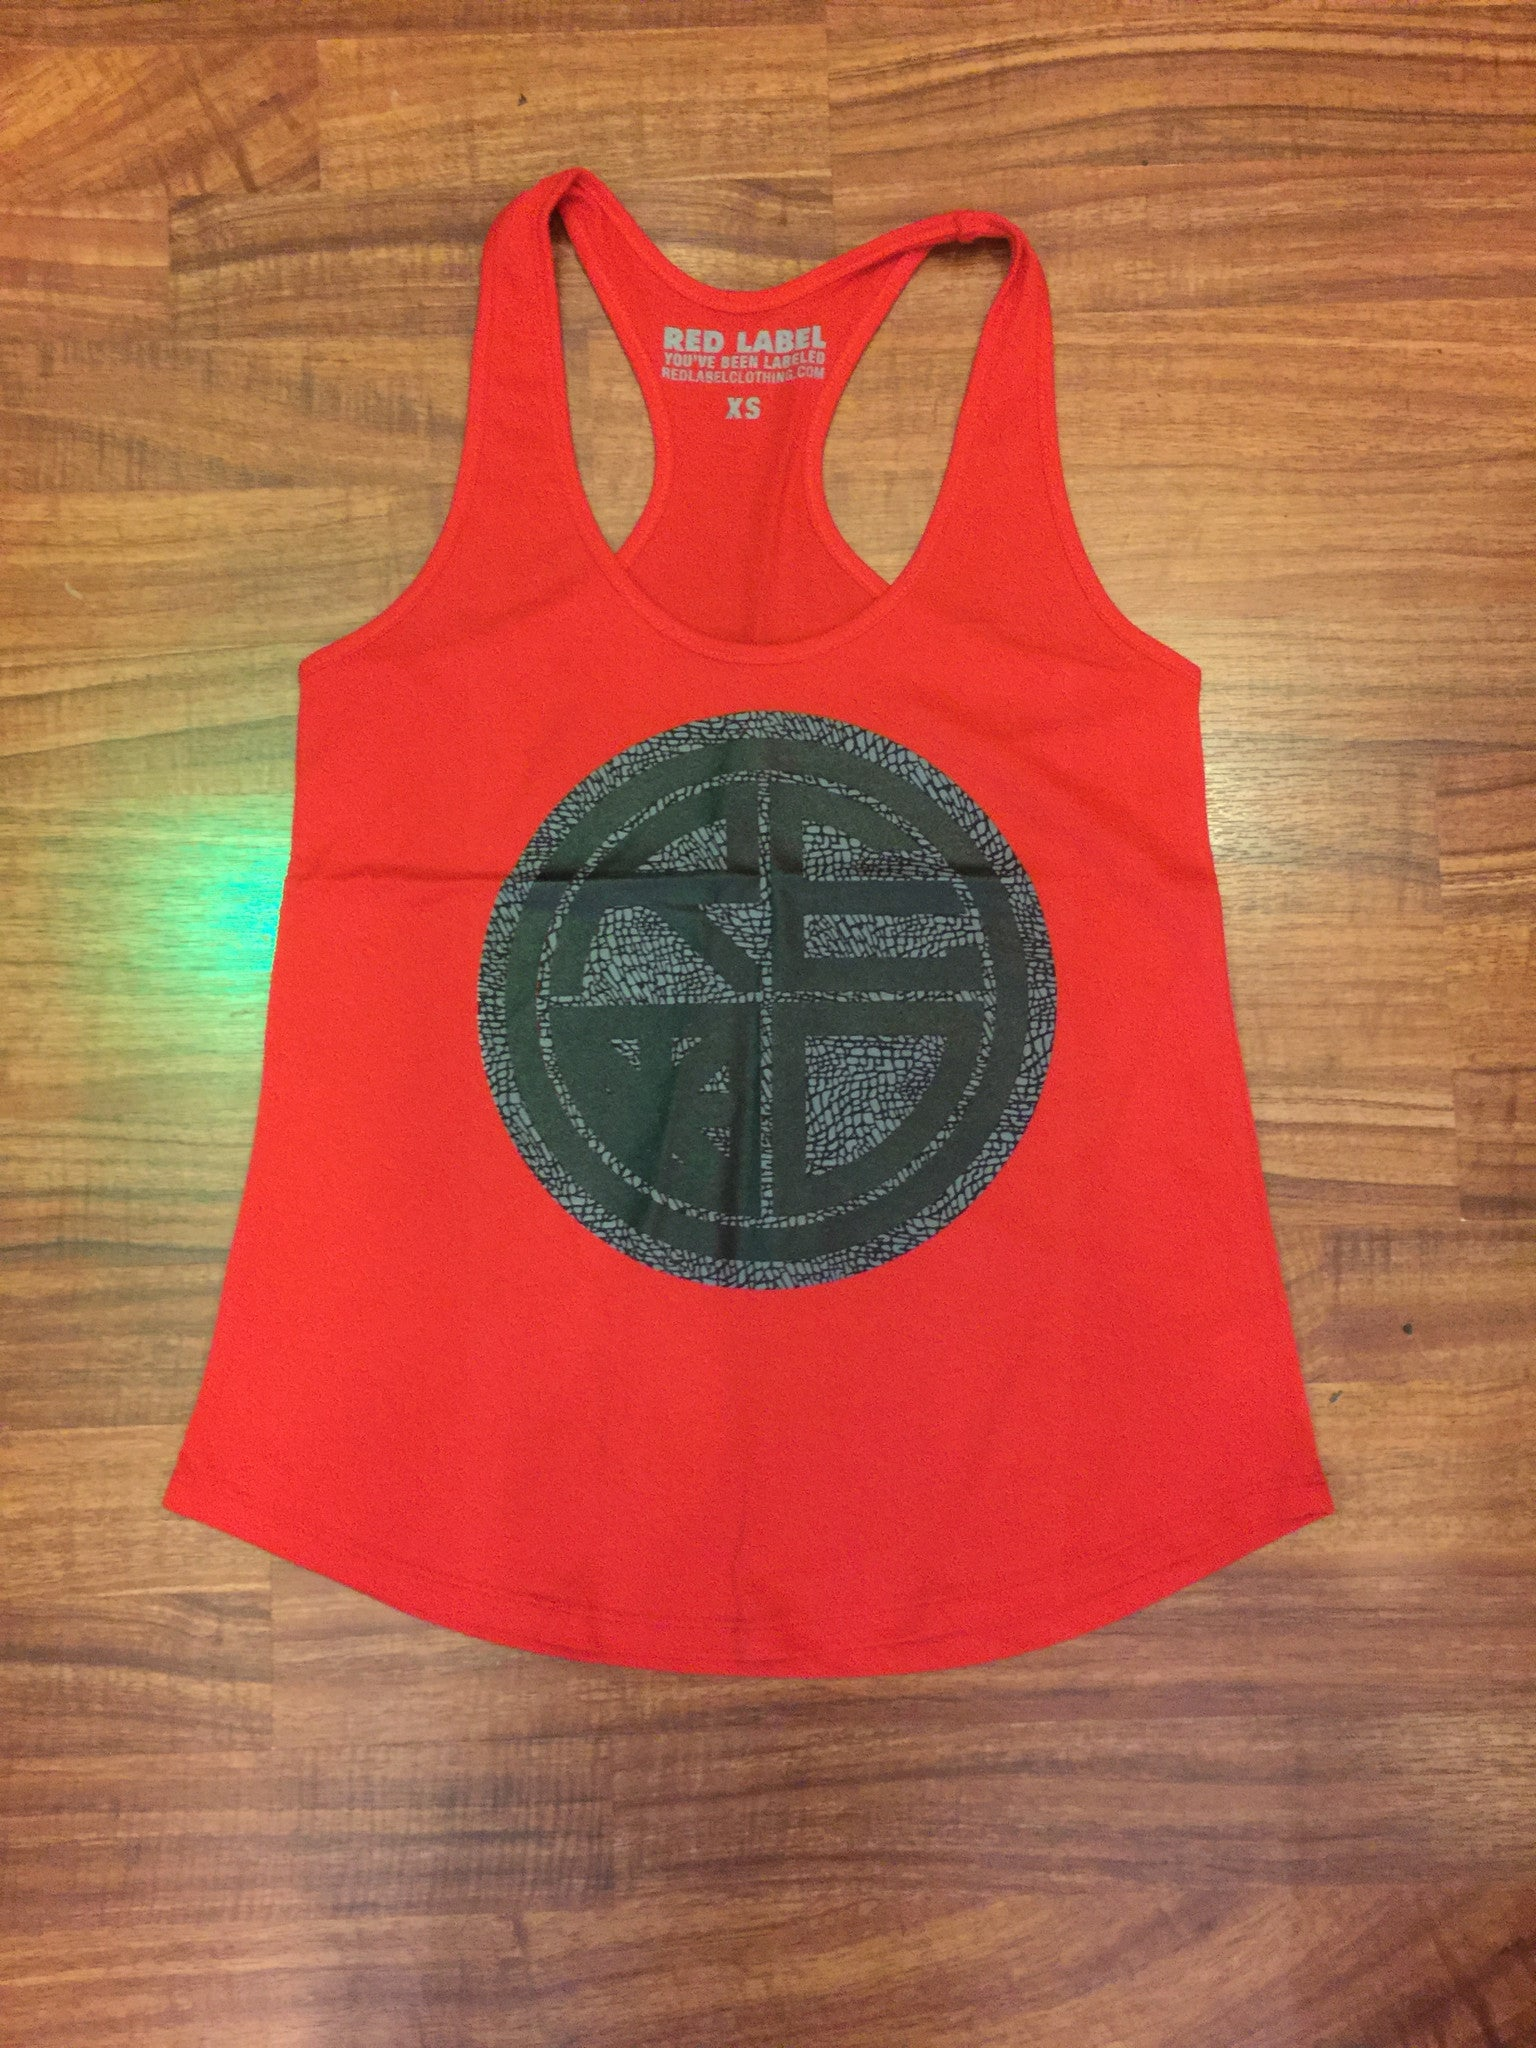 Jordan Cement Womens Racerback - Red Label Clothing Inc